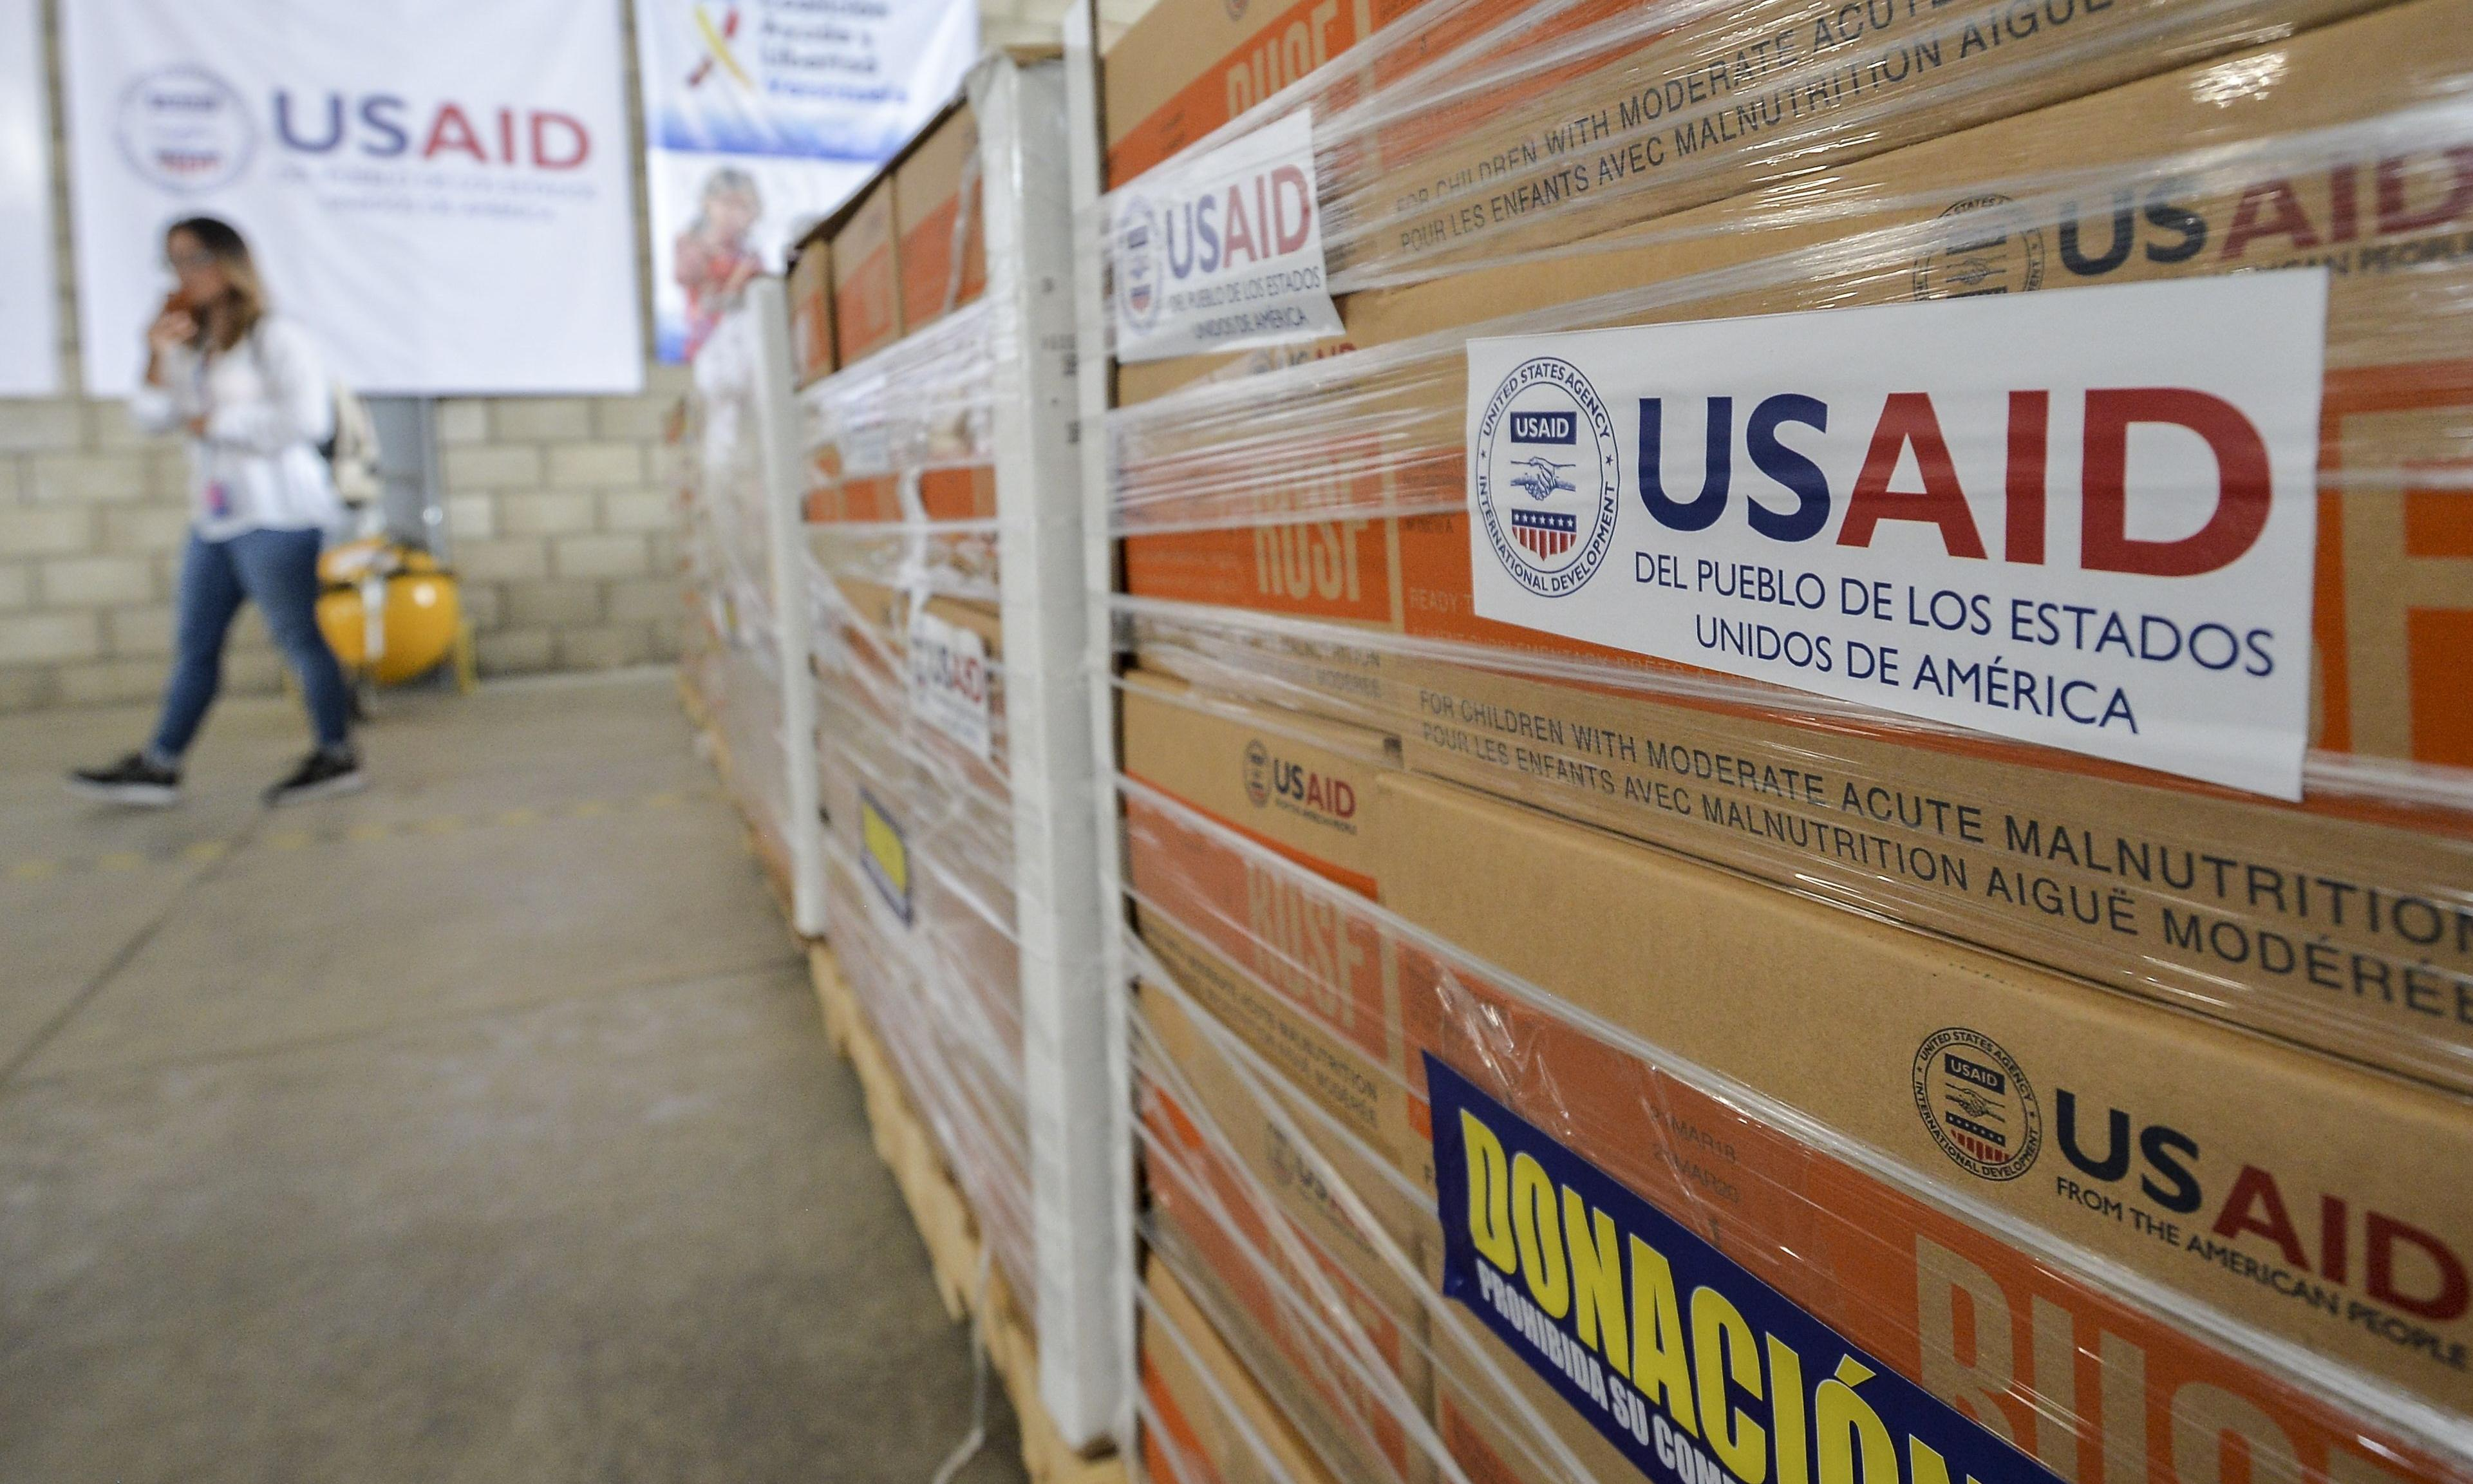 Venezuelan opposition plans delivery of aid from Colombia and Brazil